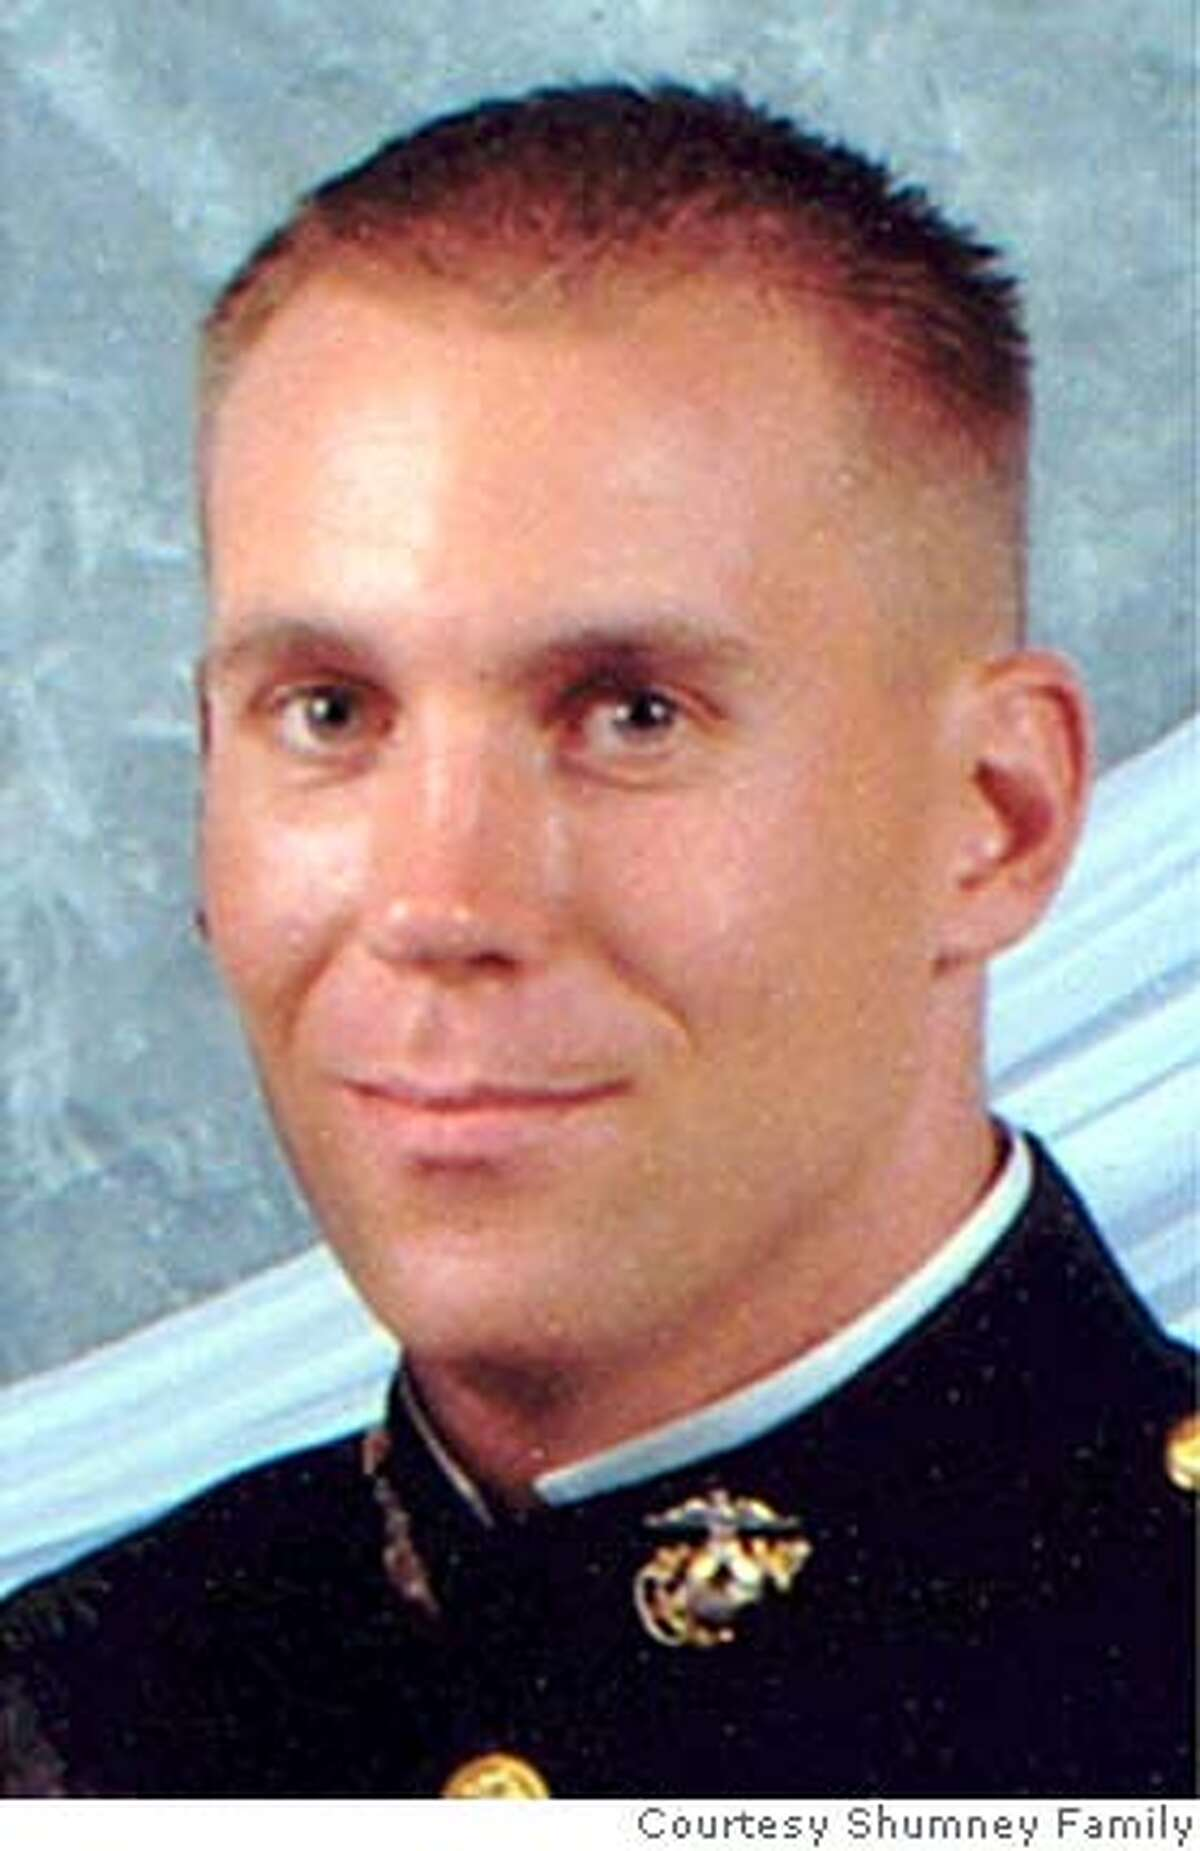 ** FILE ** This March 13, 2004, photo provided by the family showing U.S. Marine 1st Lt. Dustin M. Shumney of Vallejo, Calif., who was killed in a helicopter crash near Ar Rutbah, Iraq, Jan. 26, 2005. (AP Photo/Family photo via the Dallas Morning News) NO SALES, MAGS OUT; A MARCH 13, 2004 FAMILY PHOTO